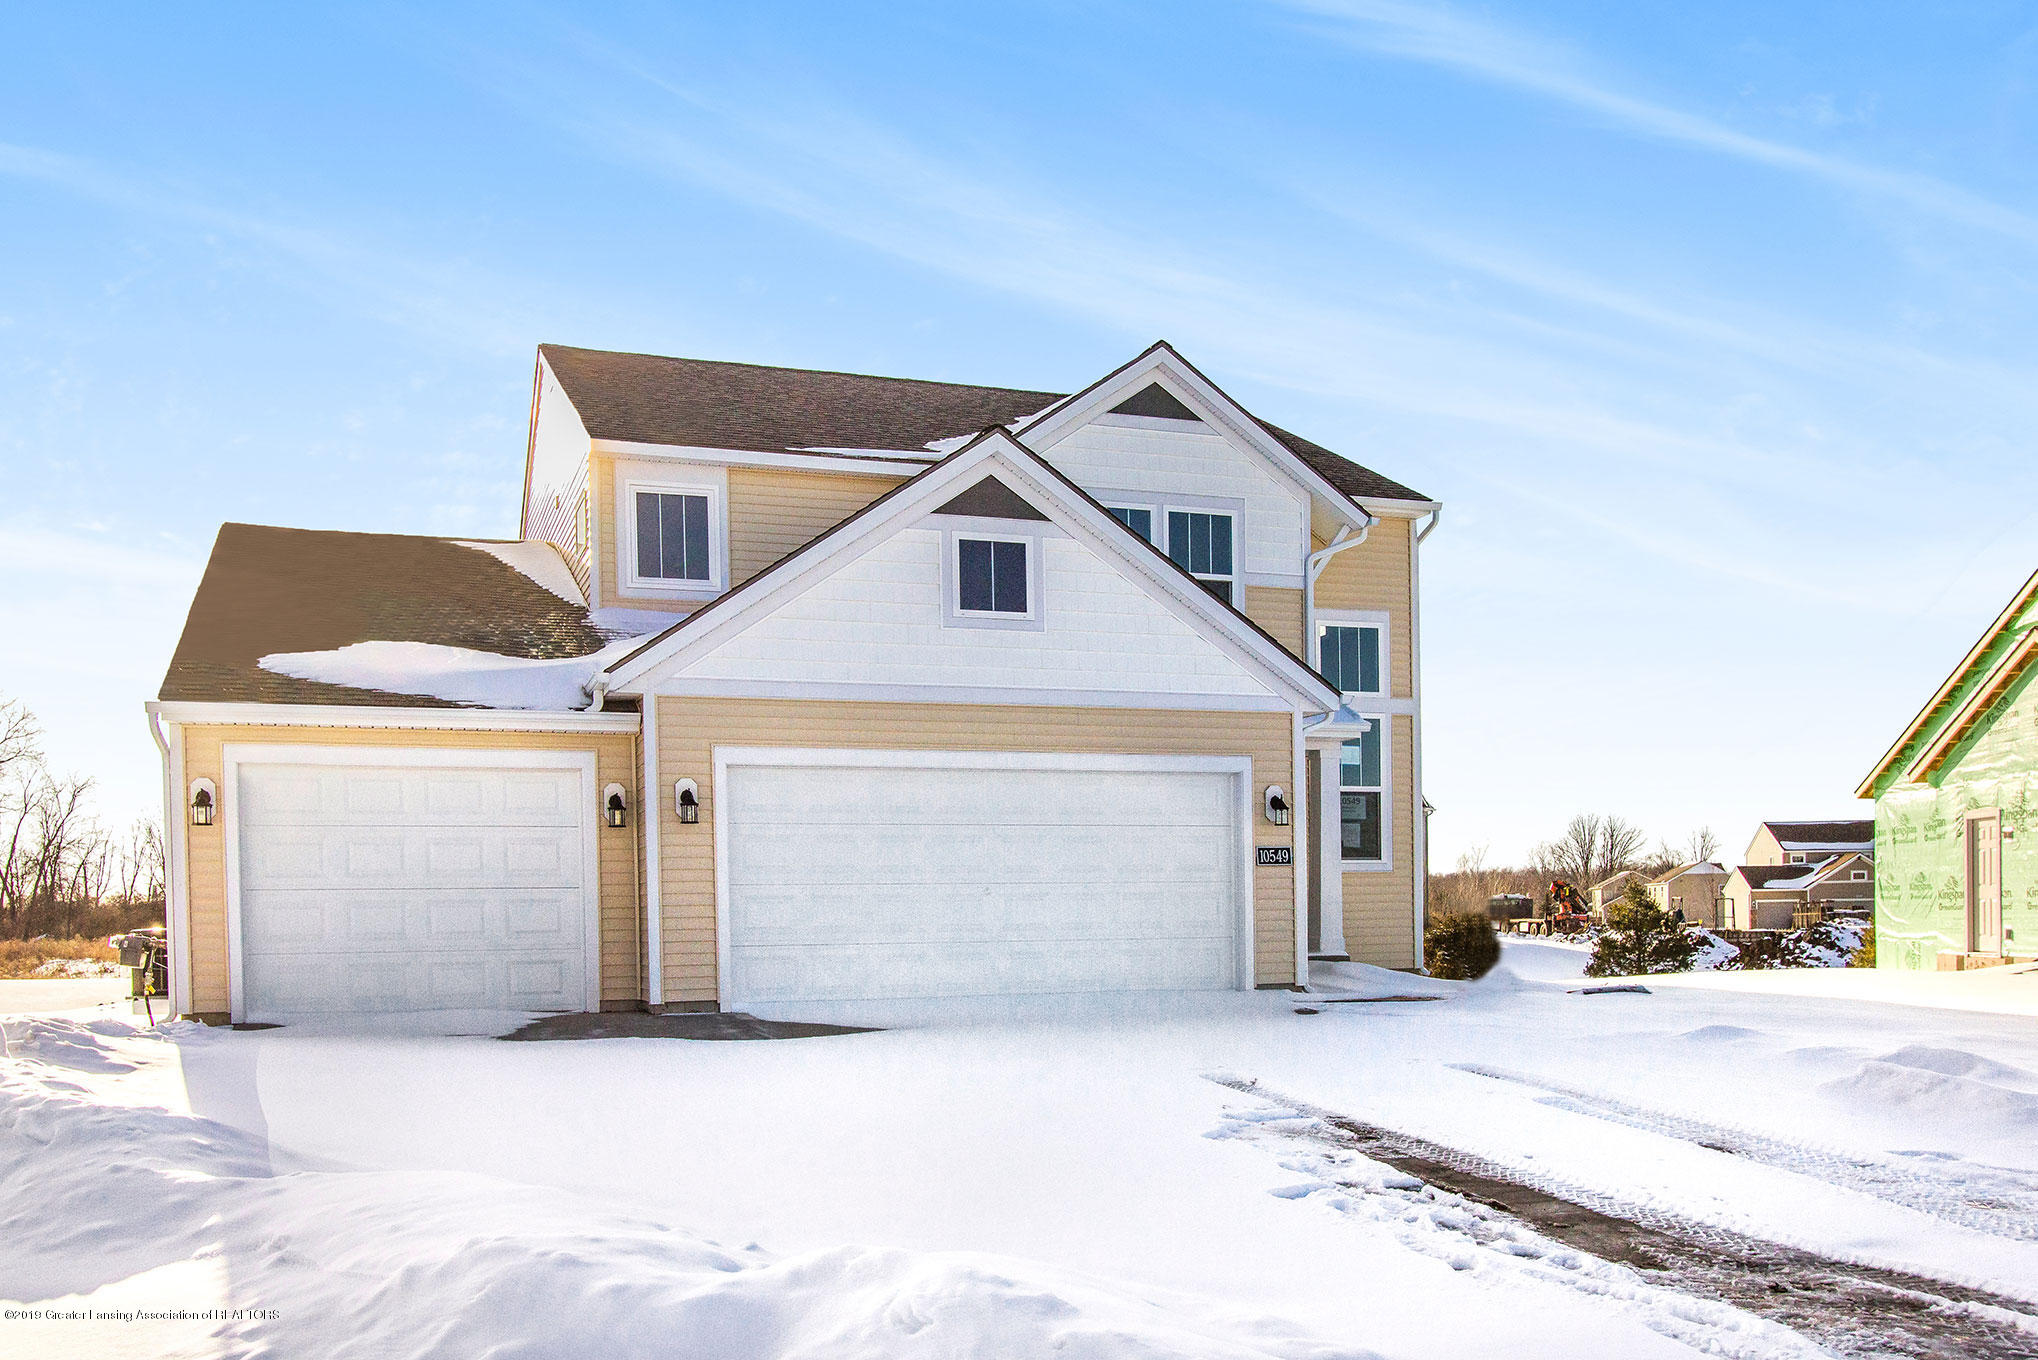 10549 Saddlebrook Dr - 10549 Saddlebrook Drive Grand Ledge, MI - 3